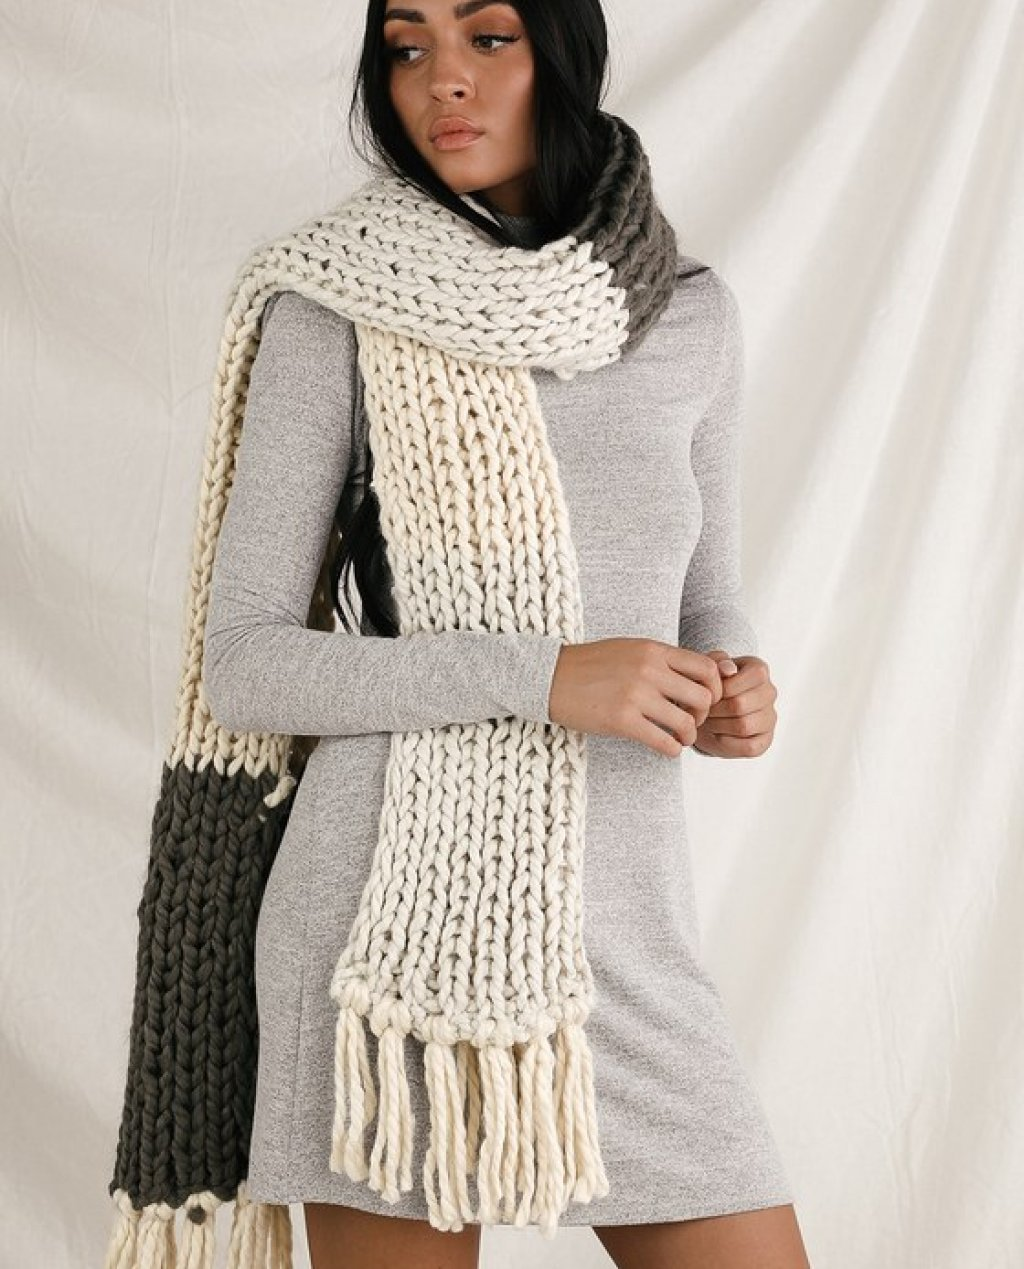 Snuggle Up Olive Green Multi Colorblock Scarf